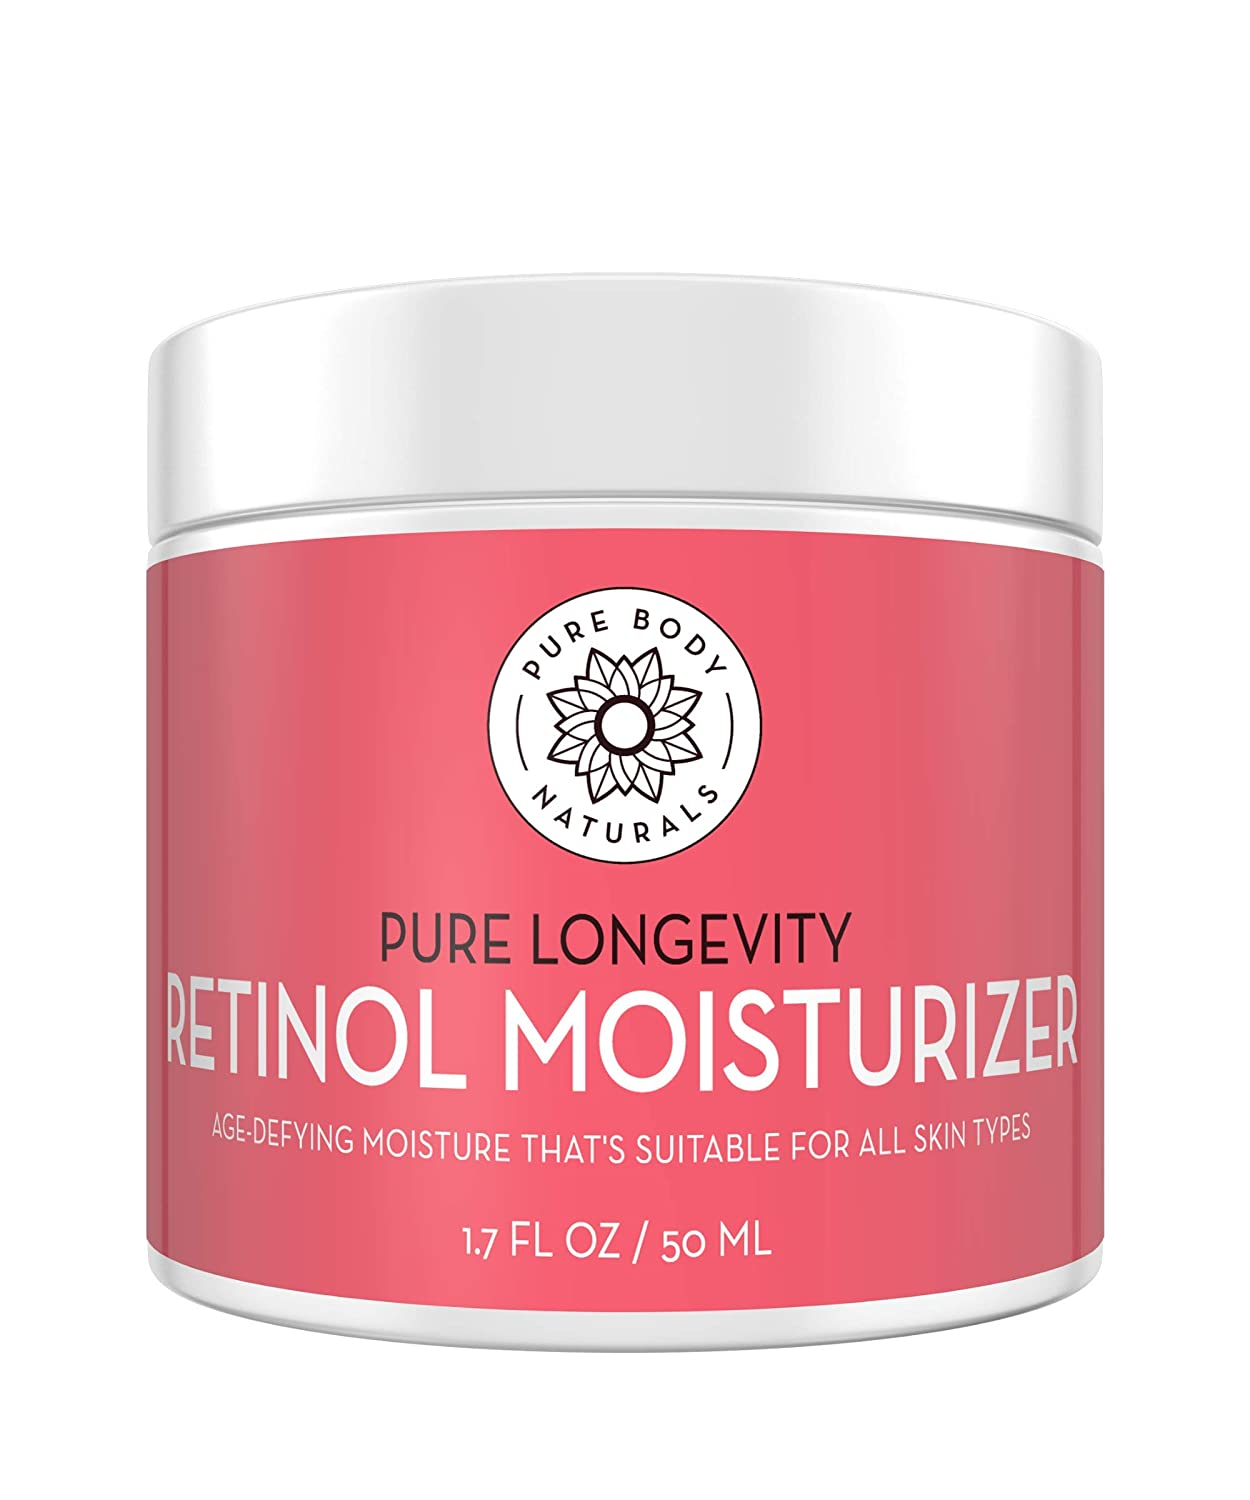 Moisturizing Retinol Cream for Face, Age Defying Eye Cream for Wrinkles and Lines with Hyaluronic Acid, Shea Butter, and Jojoba Oil by Pure Body Naturals, 1.78 Ounces, Packaging Varies